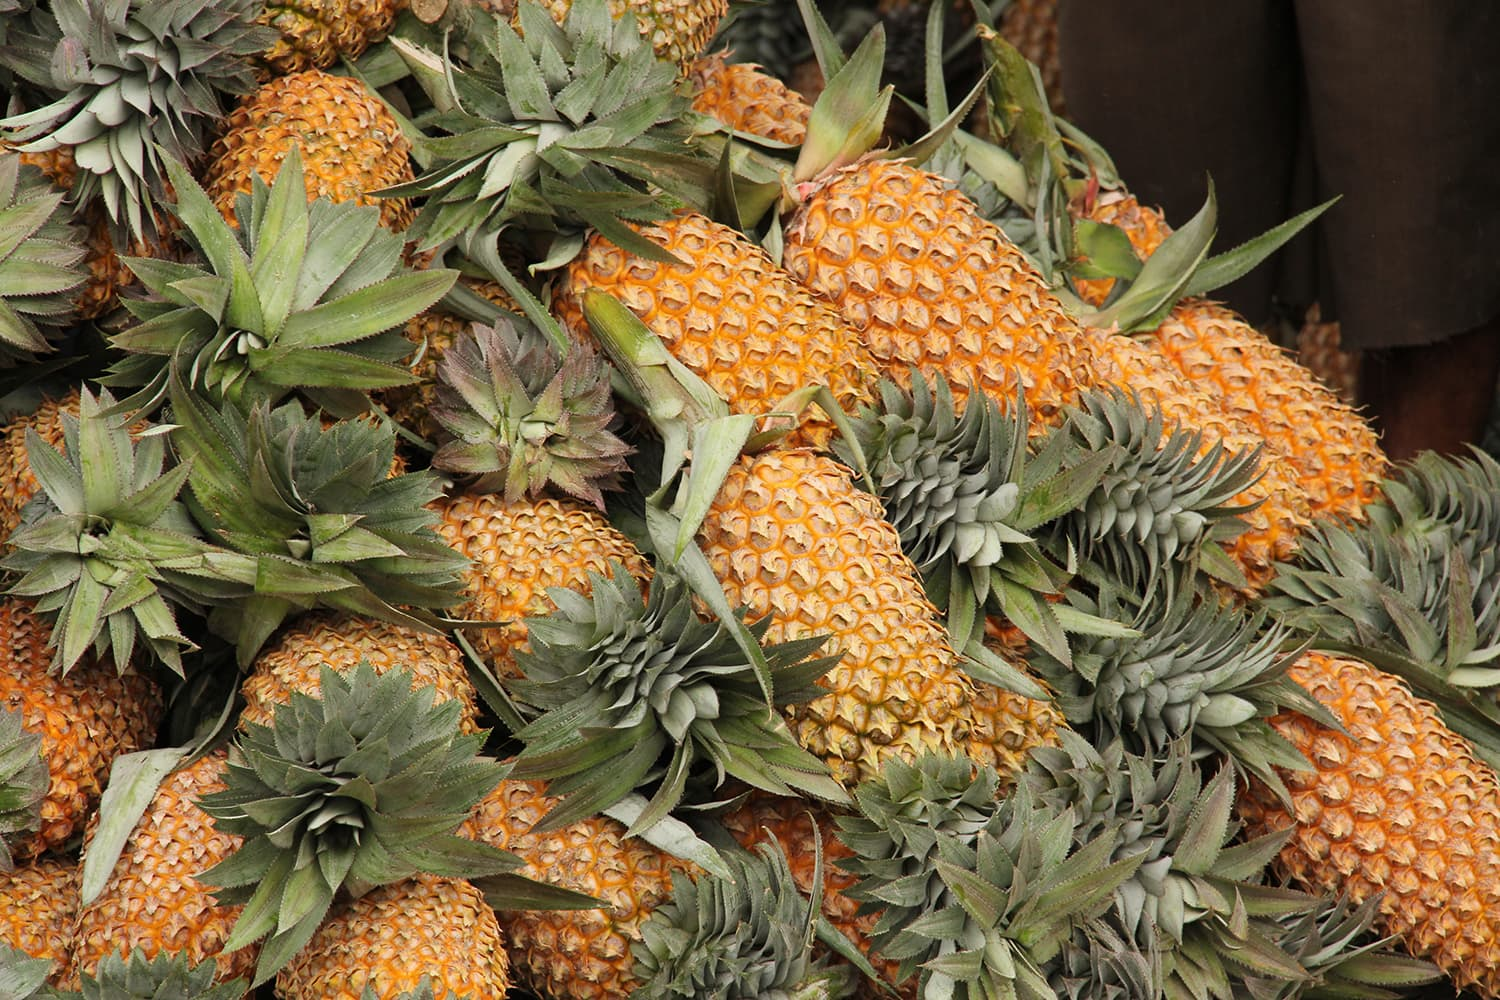 Pineapples stacked up in a market in Sri Lanka